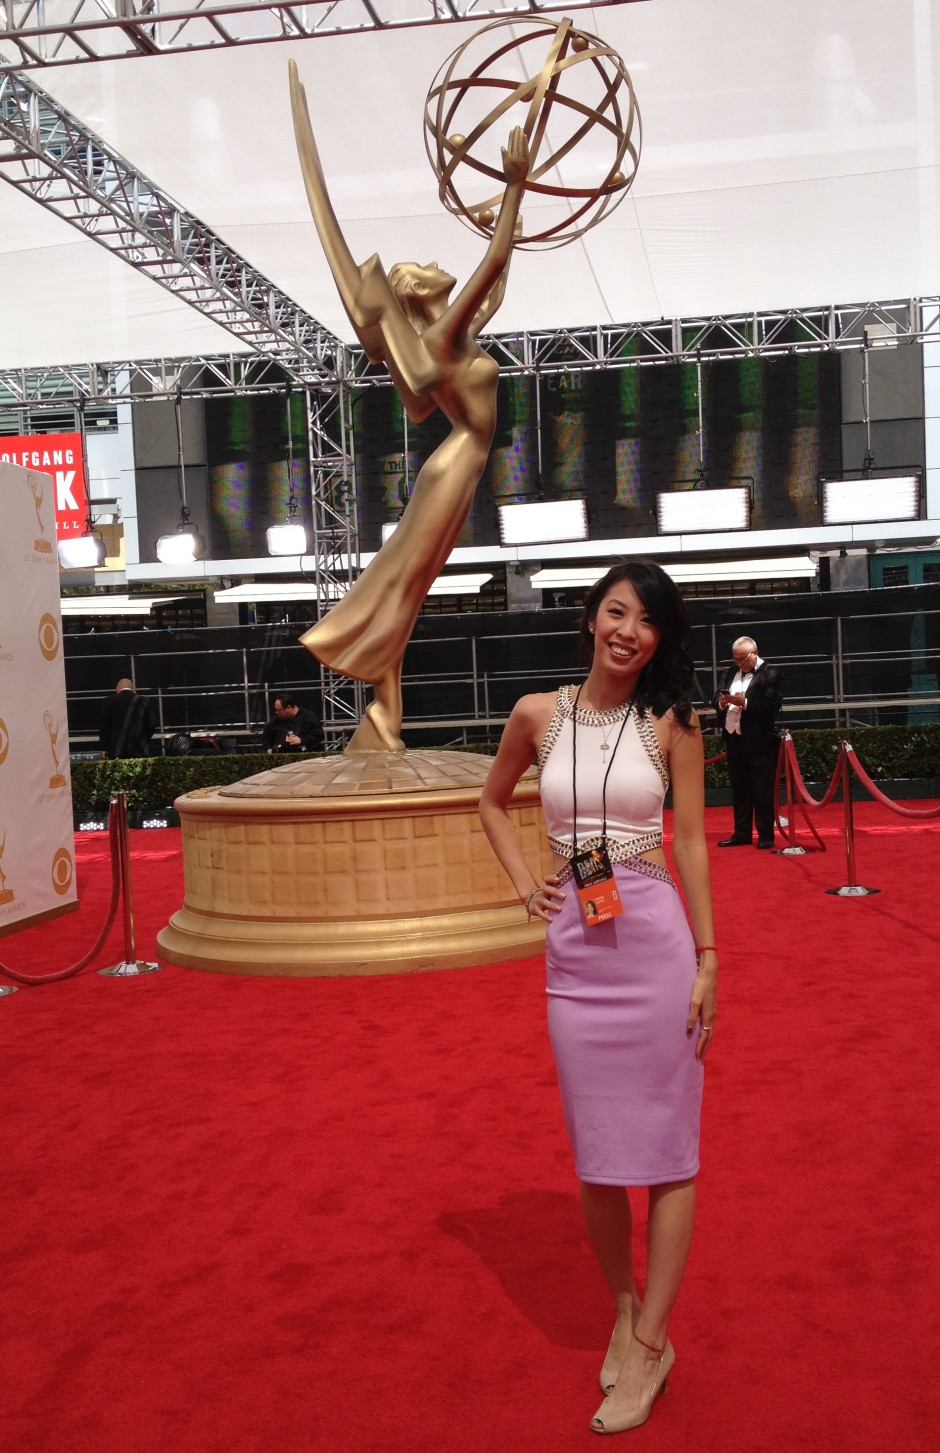 Kristie covering the Emmys Awards.